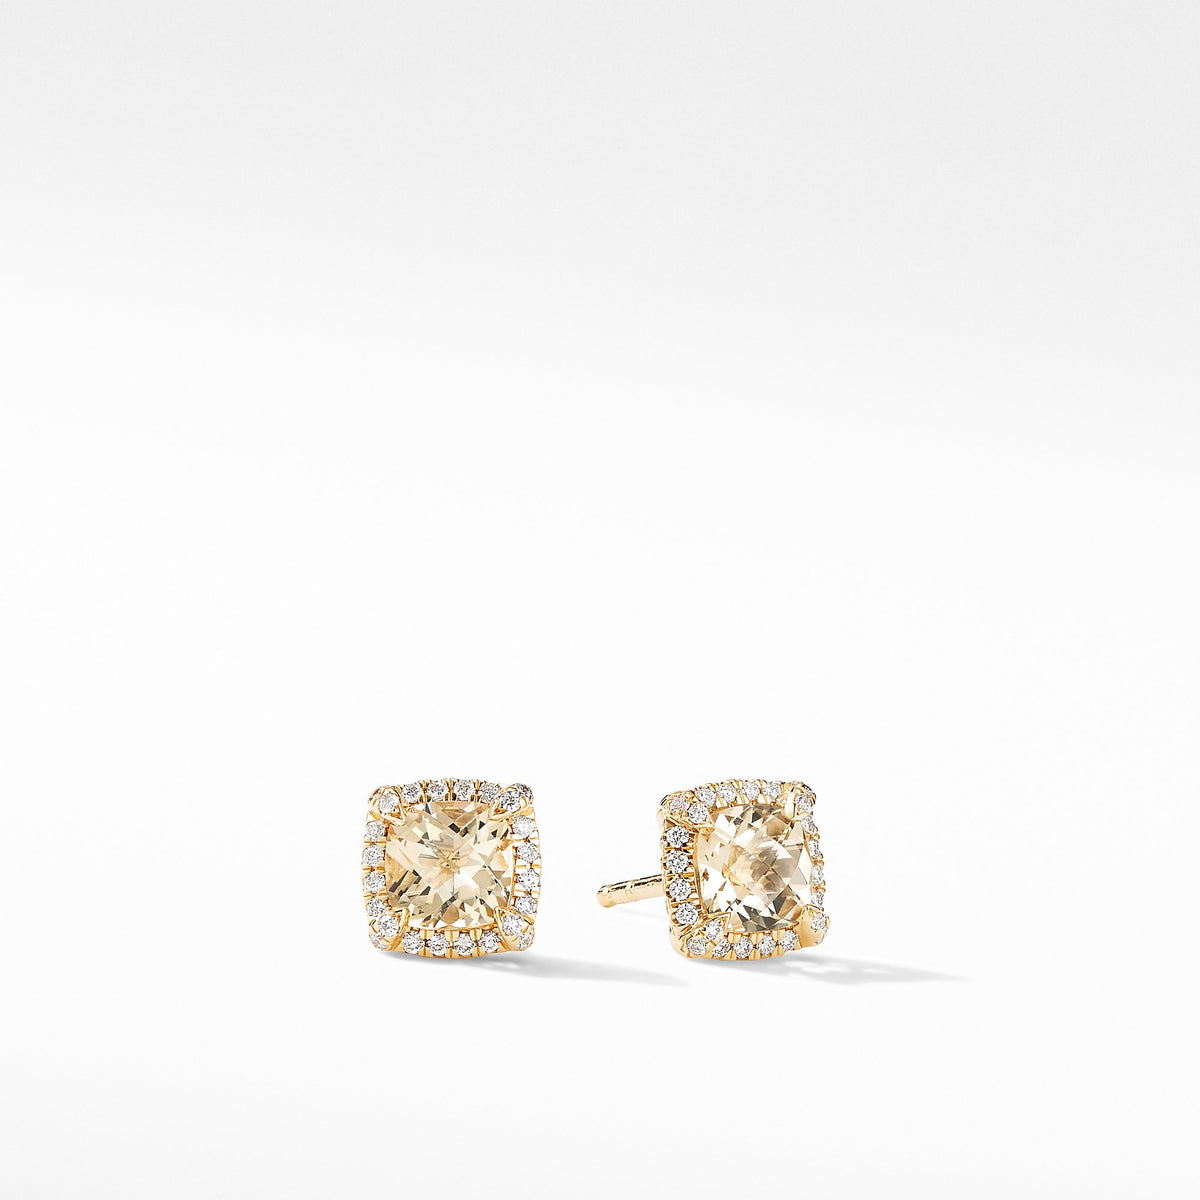 Petite Chatelaine Pave Bezel Stud Earrings in 18K Yellow Gold with Champagne Citrine